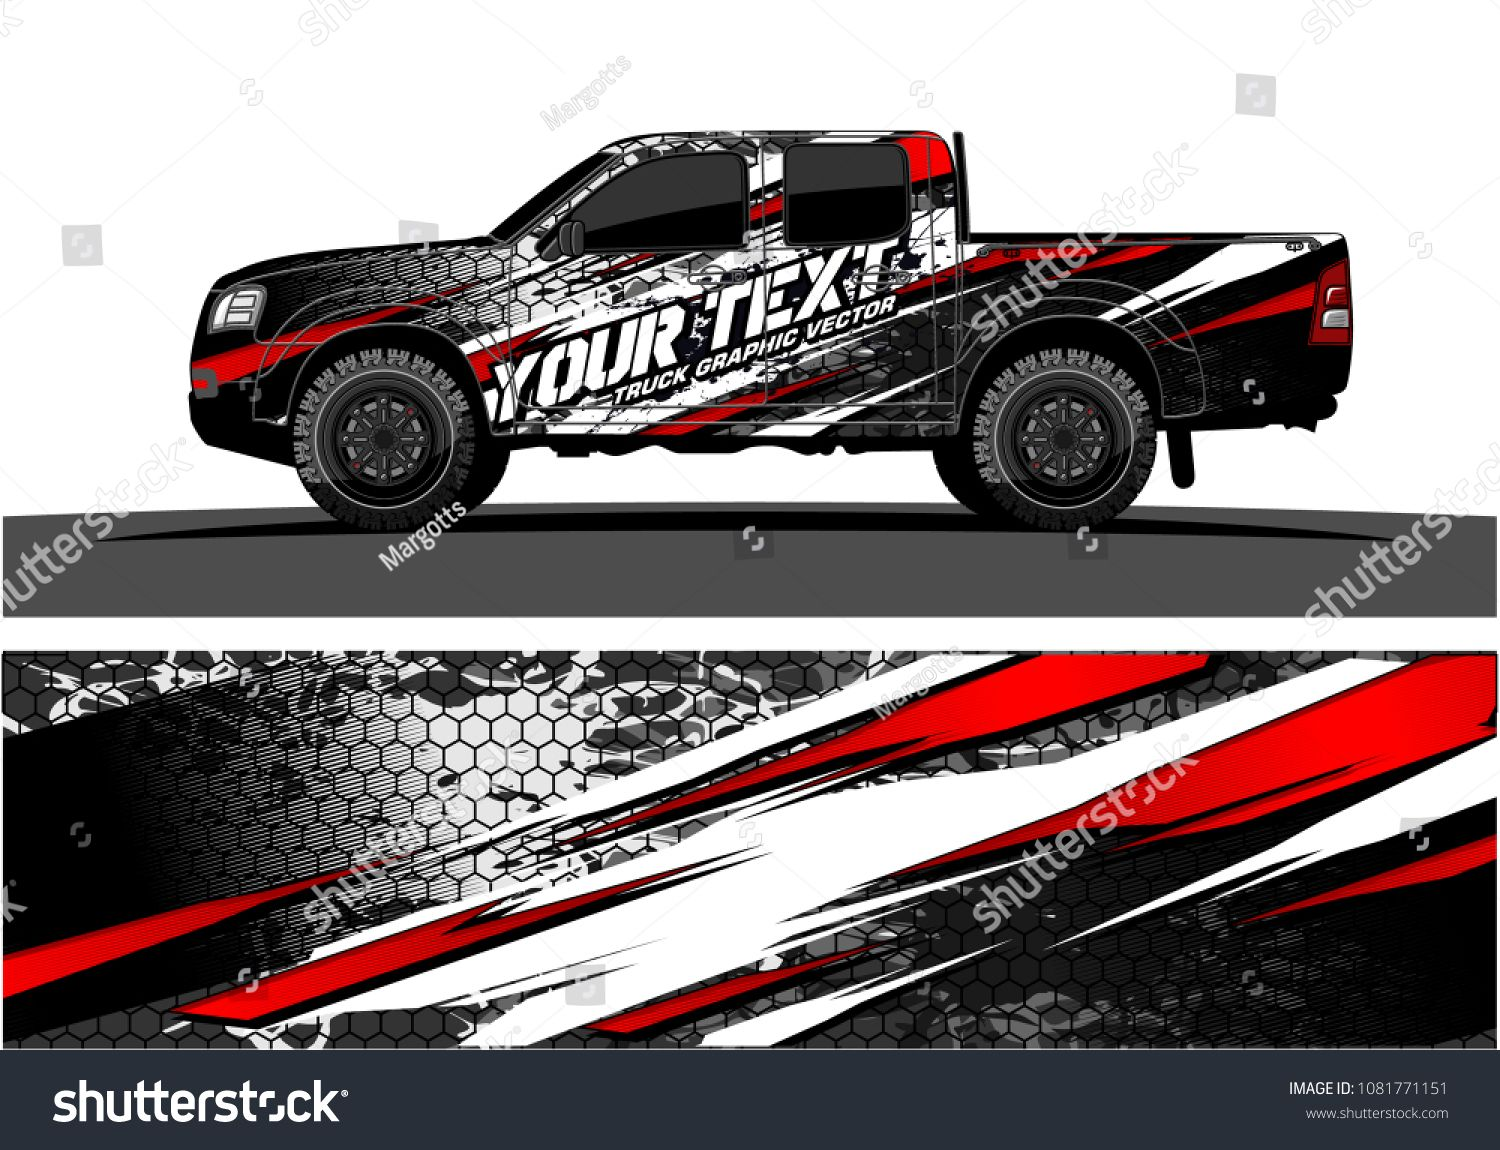 Truck graphic vector abstract grunge background design for vehicle vinyl wrap and car branding